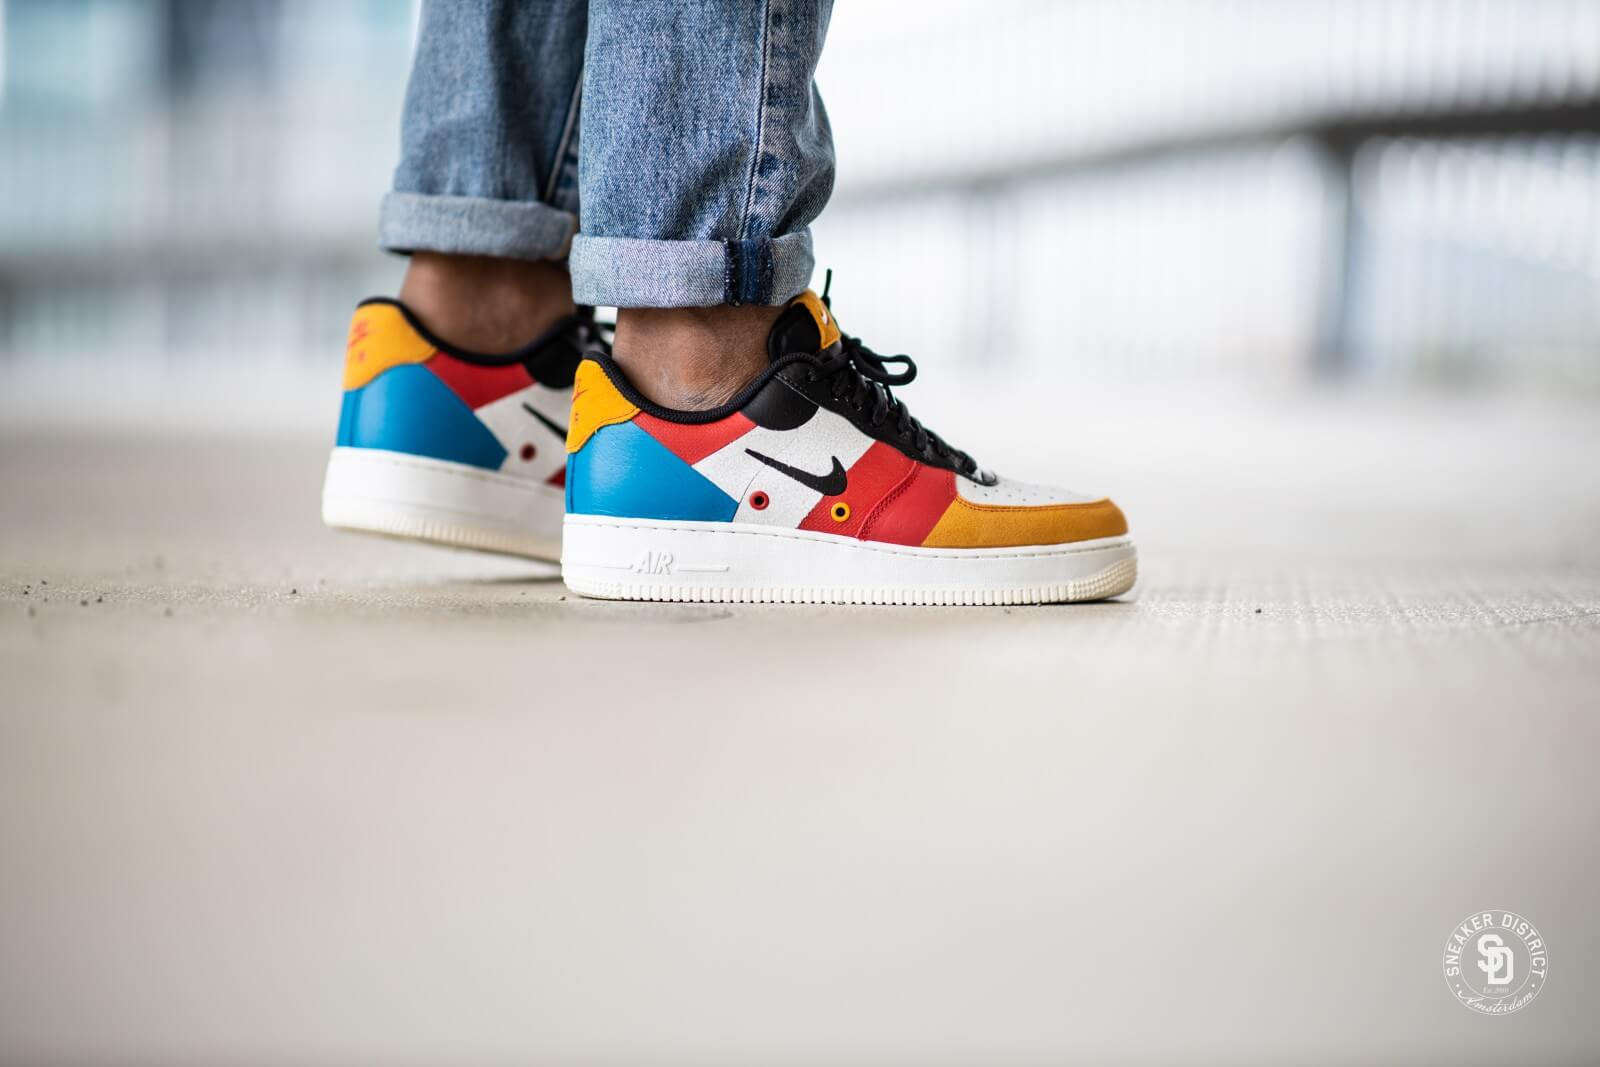 Resaltar Mortal Repulsión  Nike Air Force 1 '07 Premium 1 Sail/Imperial Blue-Amber Rise - CI0065-101